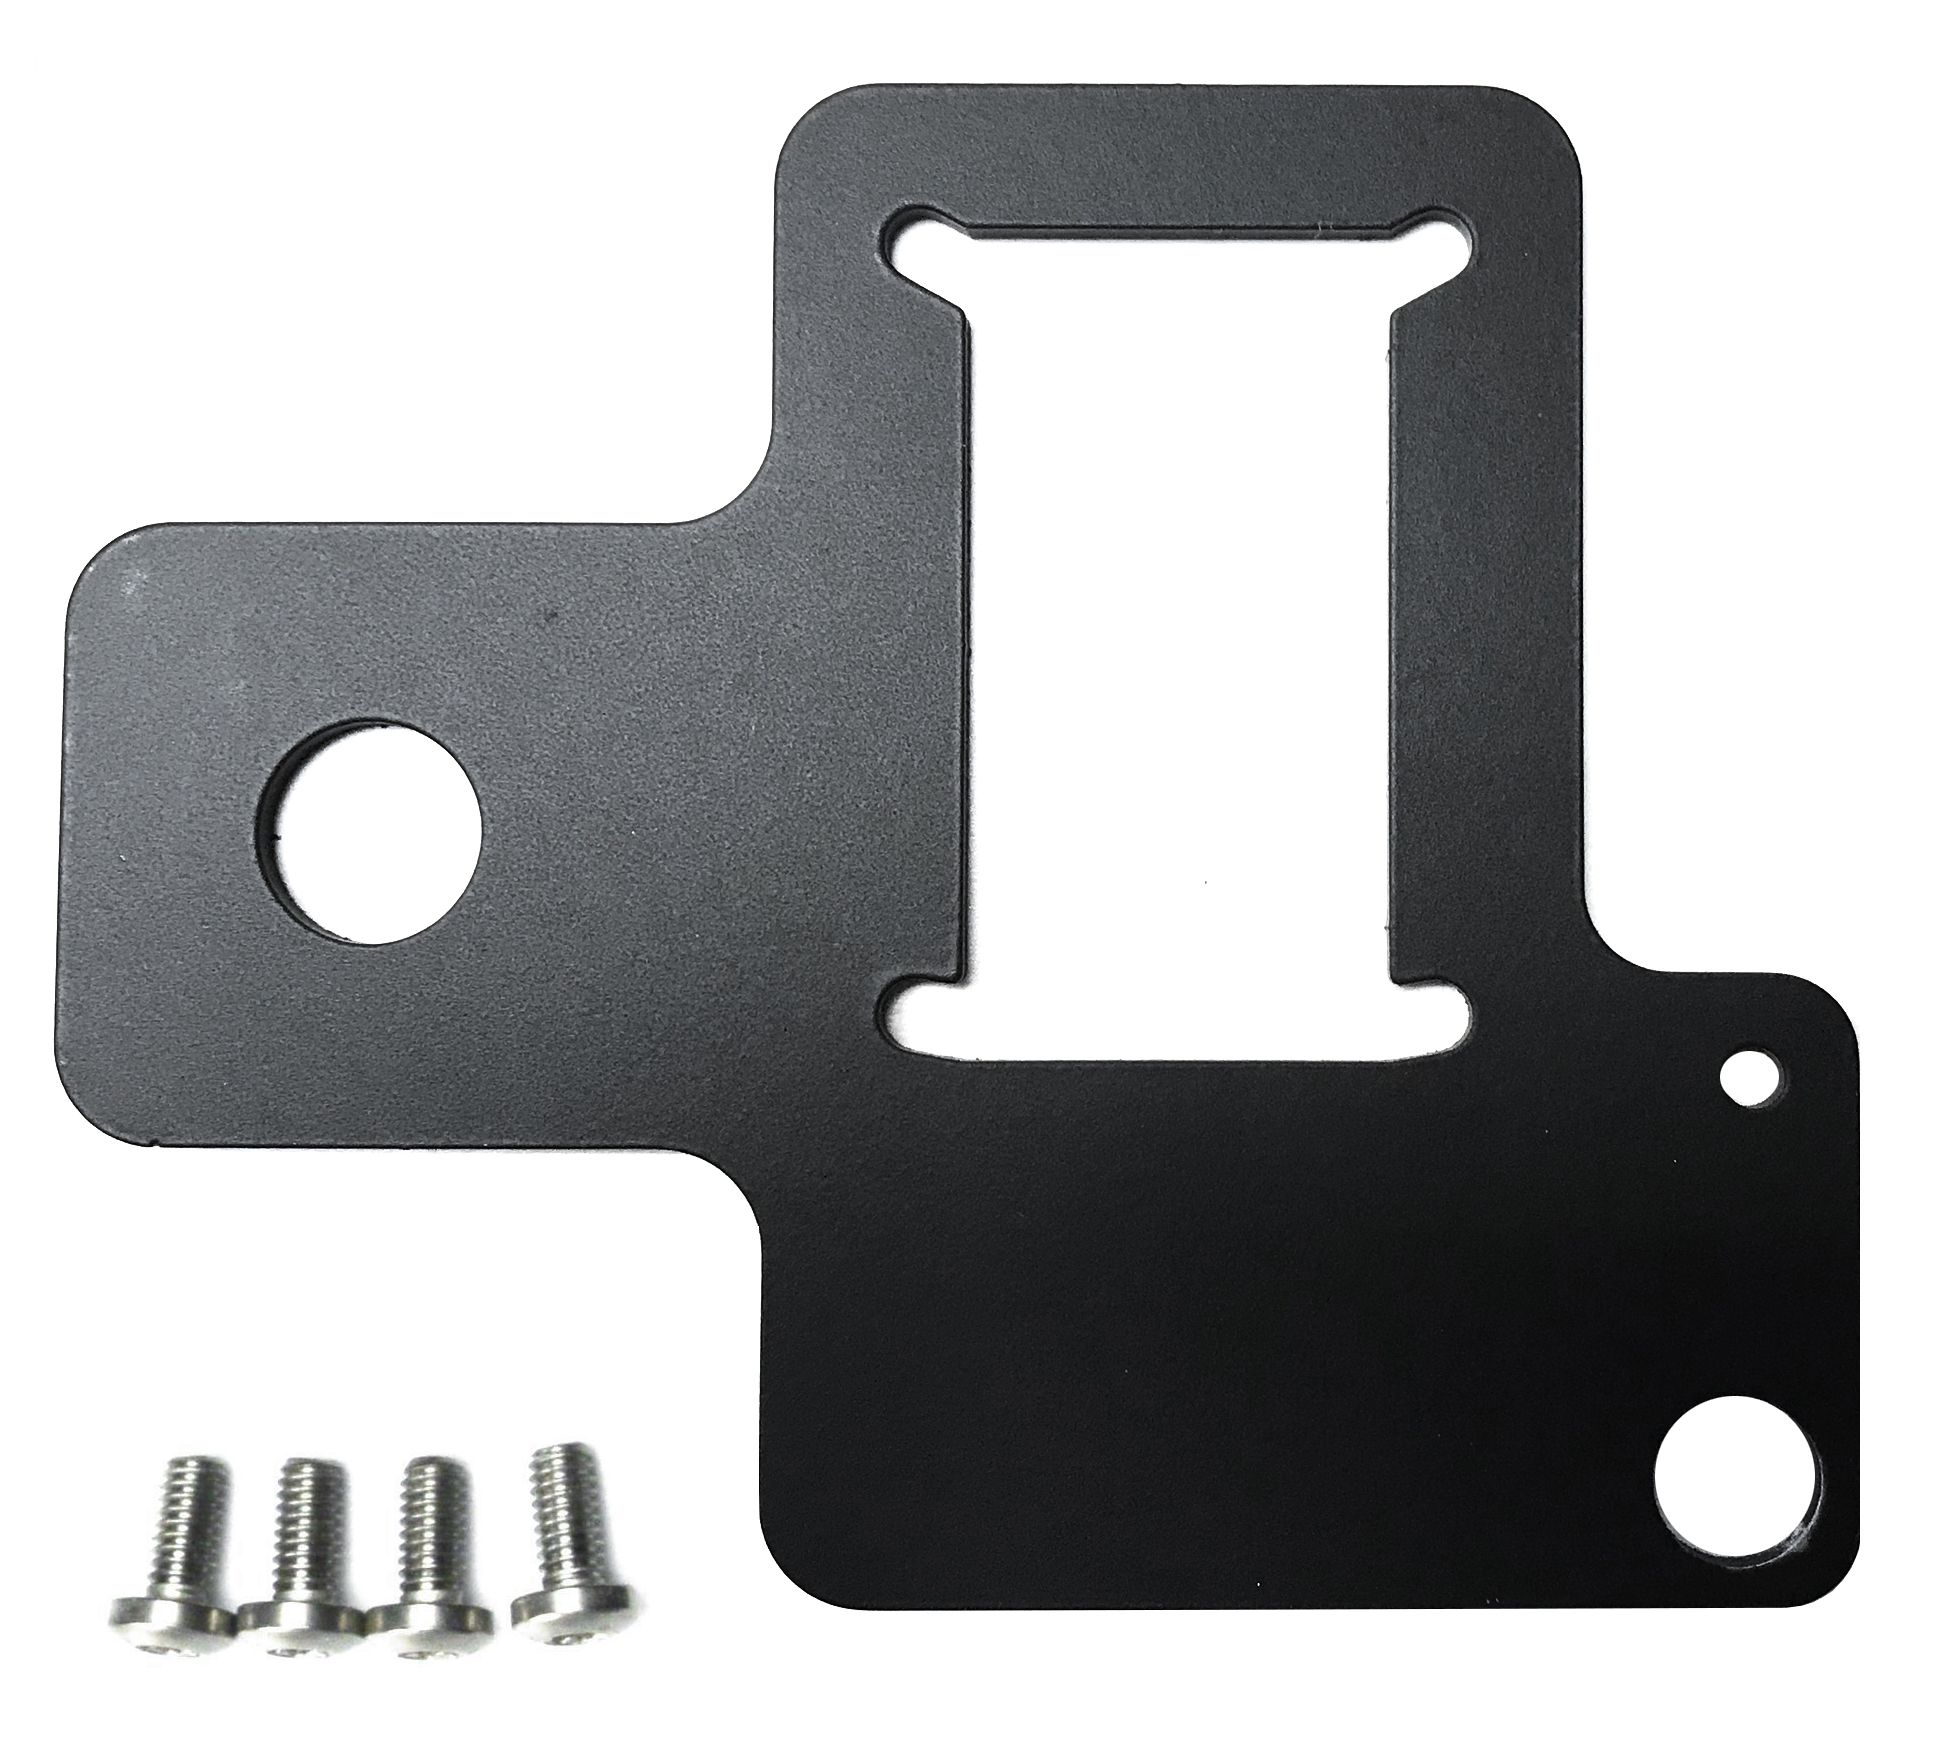 5975 - Multiverse Node Mounting Plate with hardware